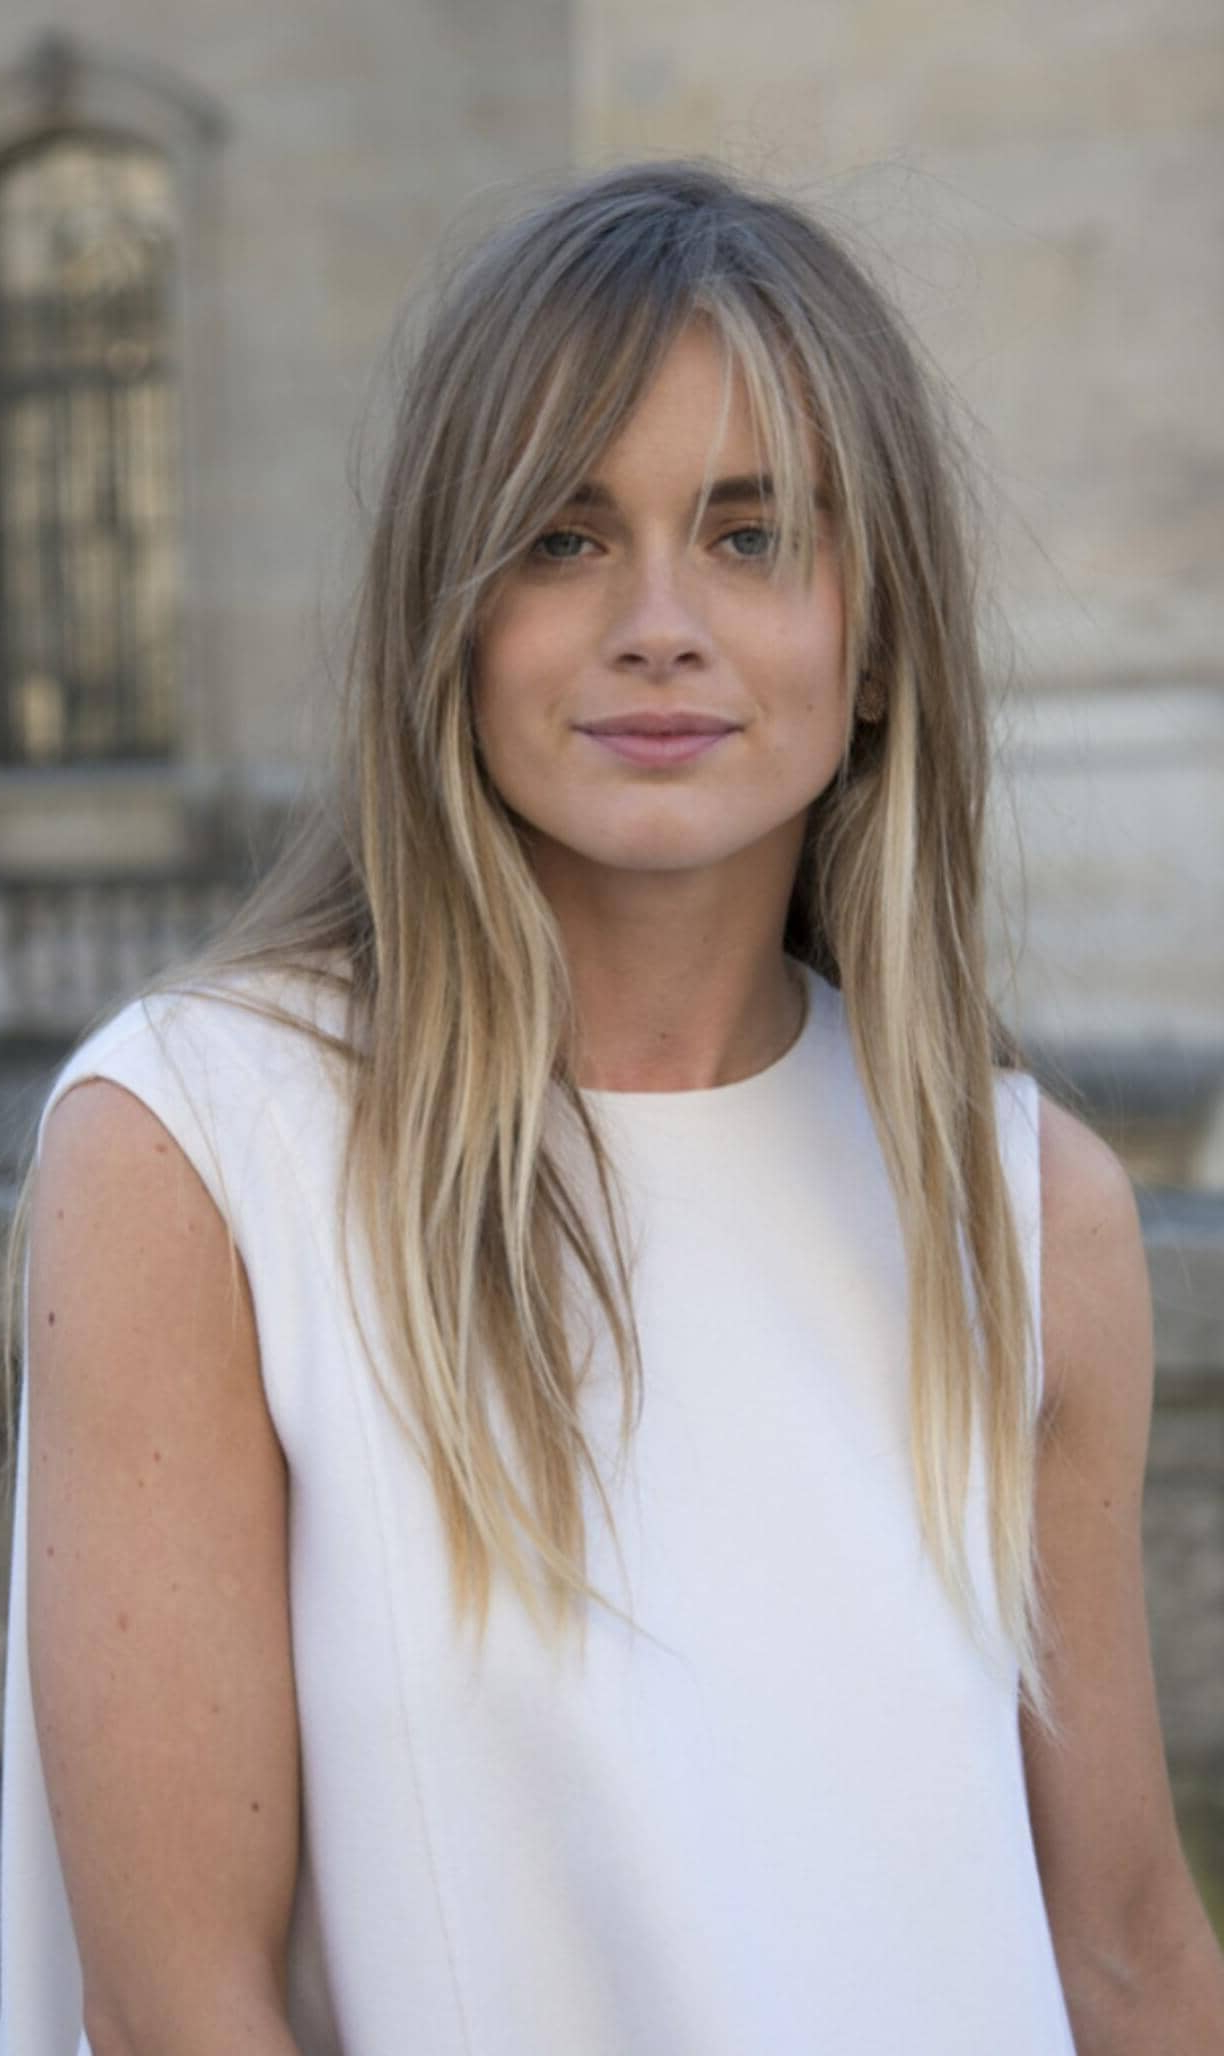 50 Fresh Hairstyle Ideas With Side Bangs To Shake Up Your Style Throughout Well Known Medium Haircuts With Side Bangs (Gallery 14 of 20)